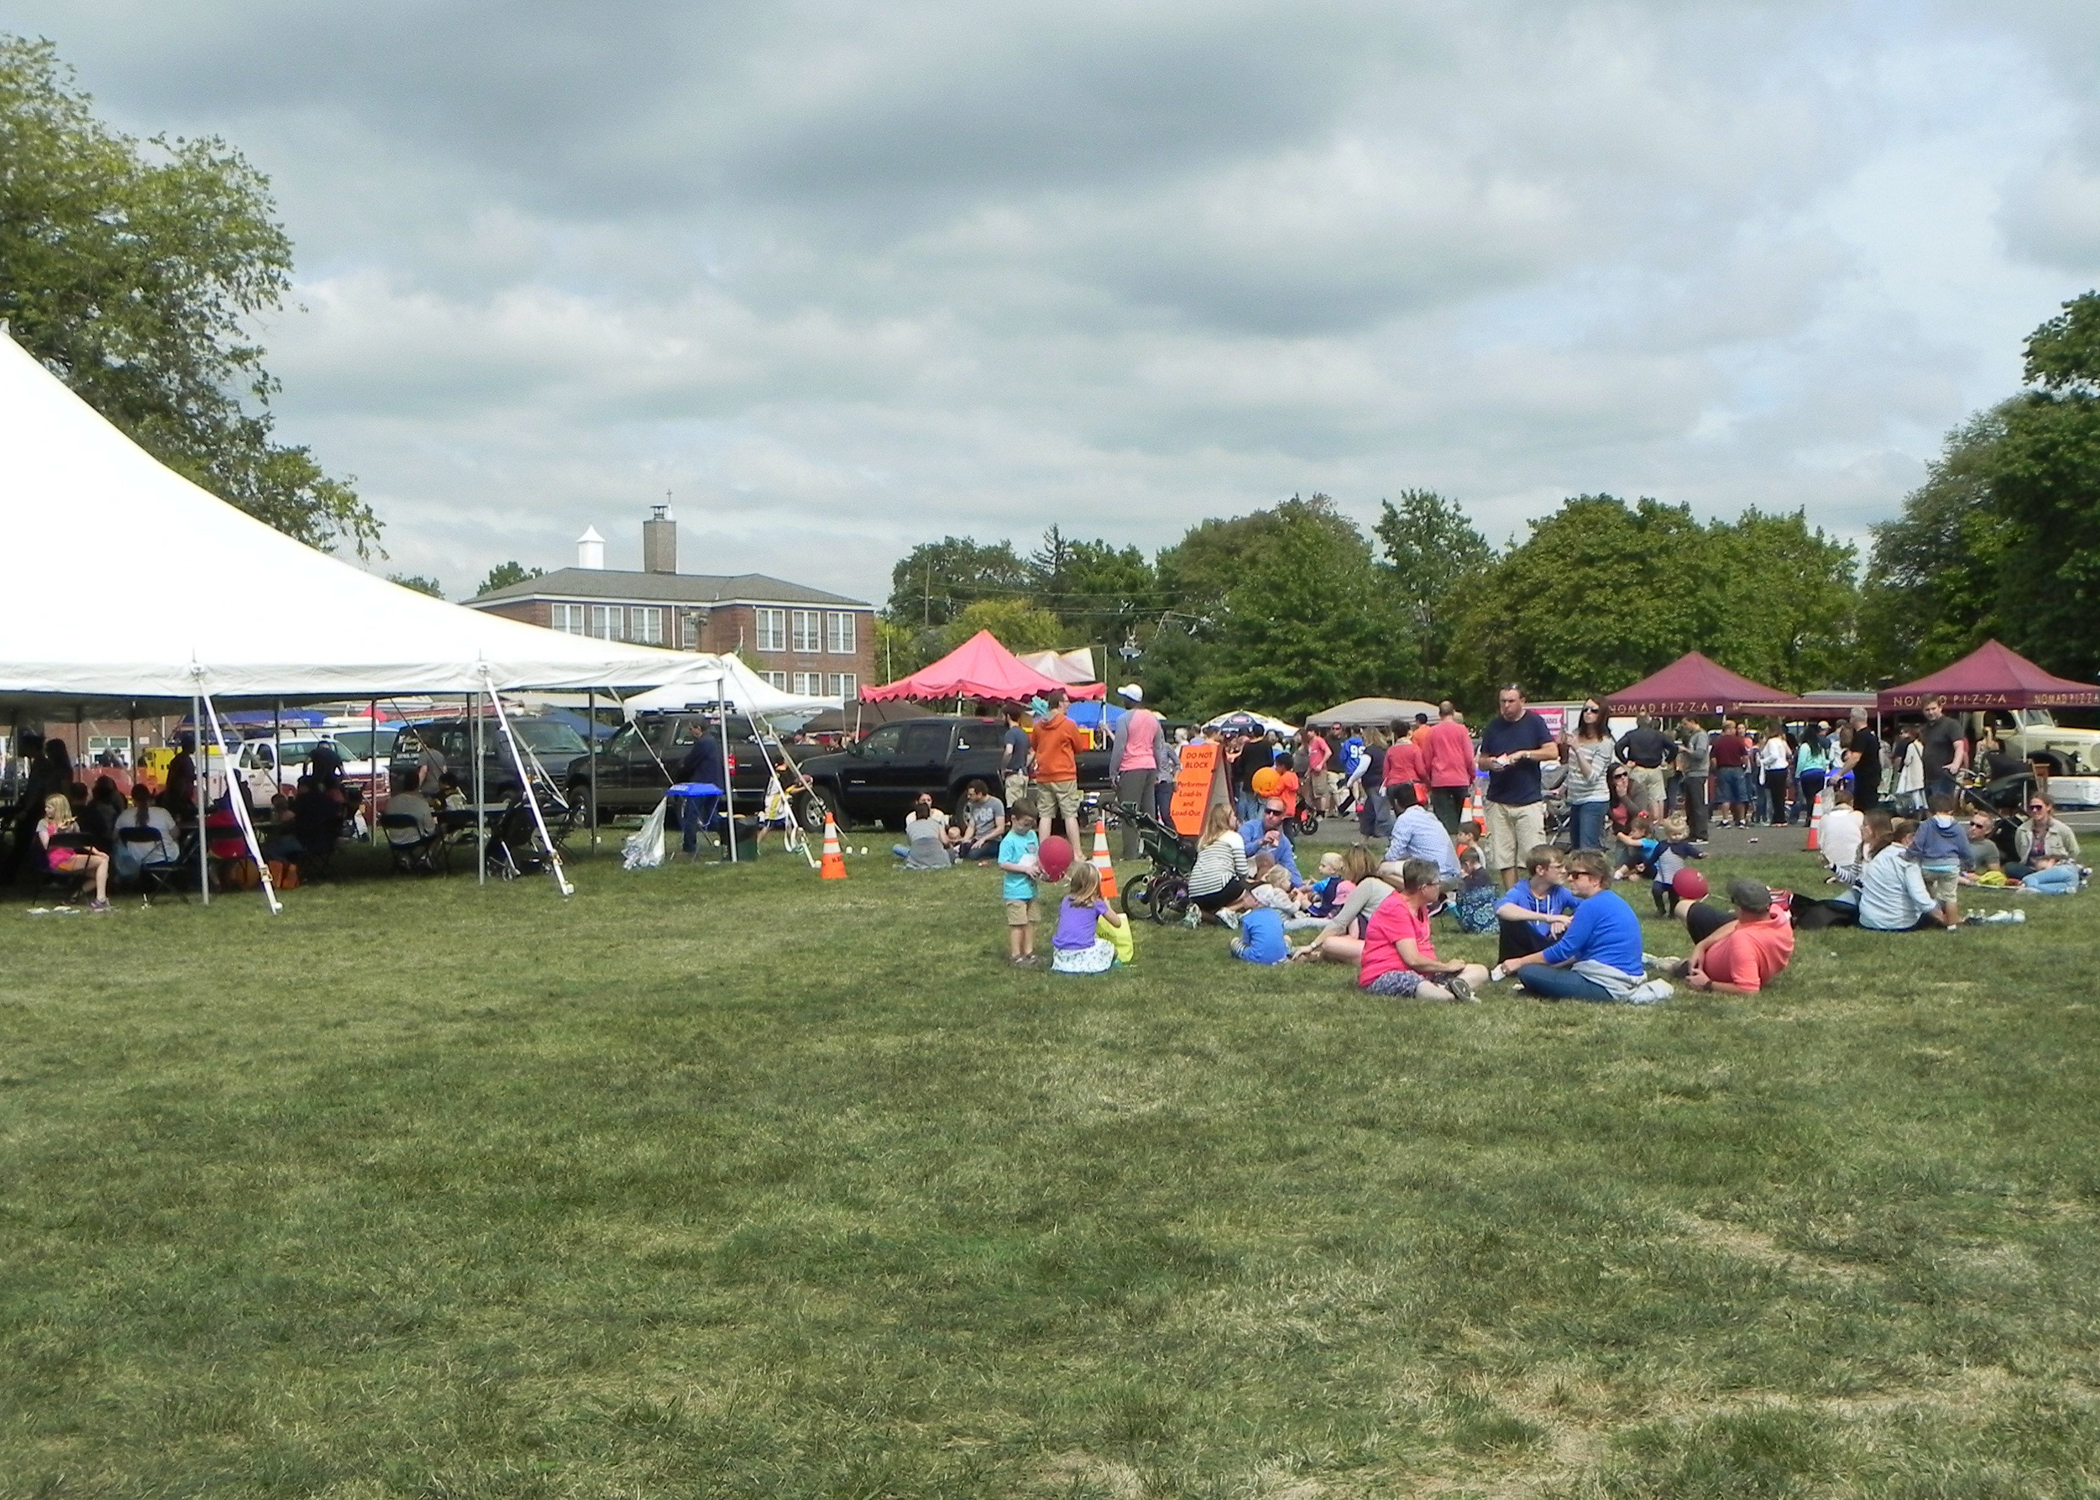 Letter to the Editor: 29th Annual Hopewell Harvest Fair was a Great Success